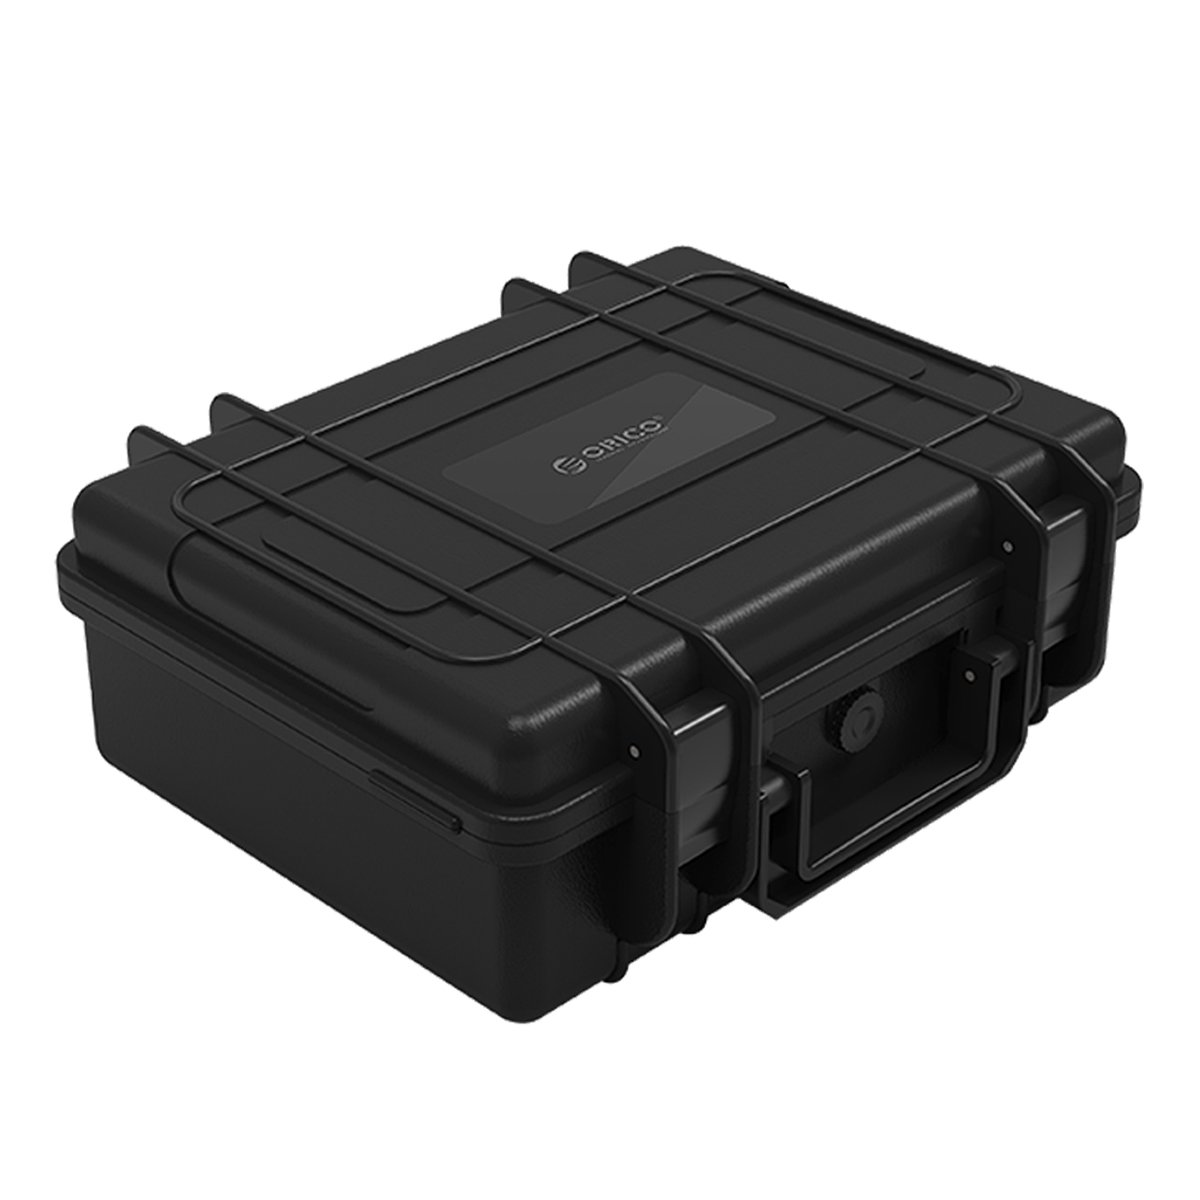 ORICO External Hard Drive Case, 20-Bay Multi-Protection HDD Storage Box Carrying Case for 3.5'' HDD/SSD Briefcase